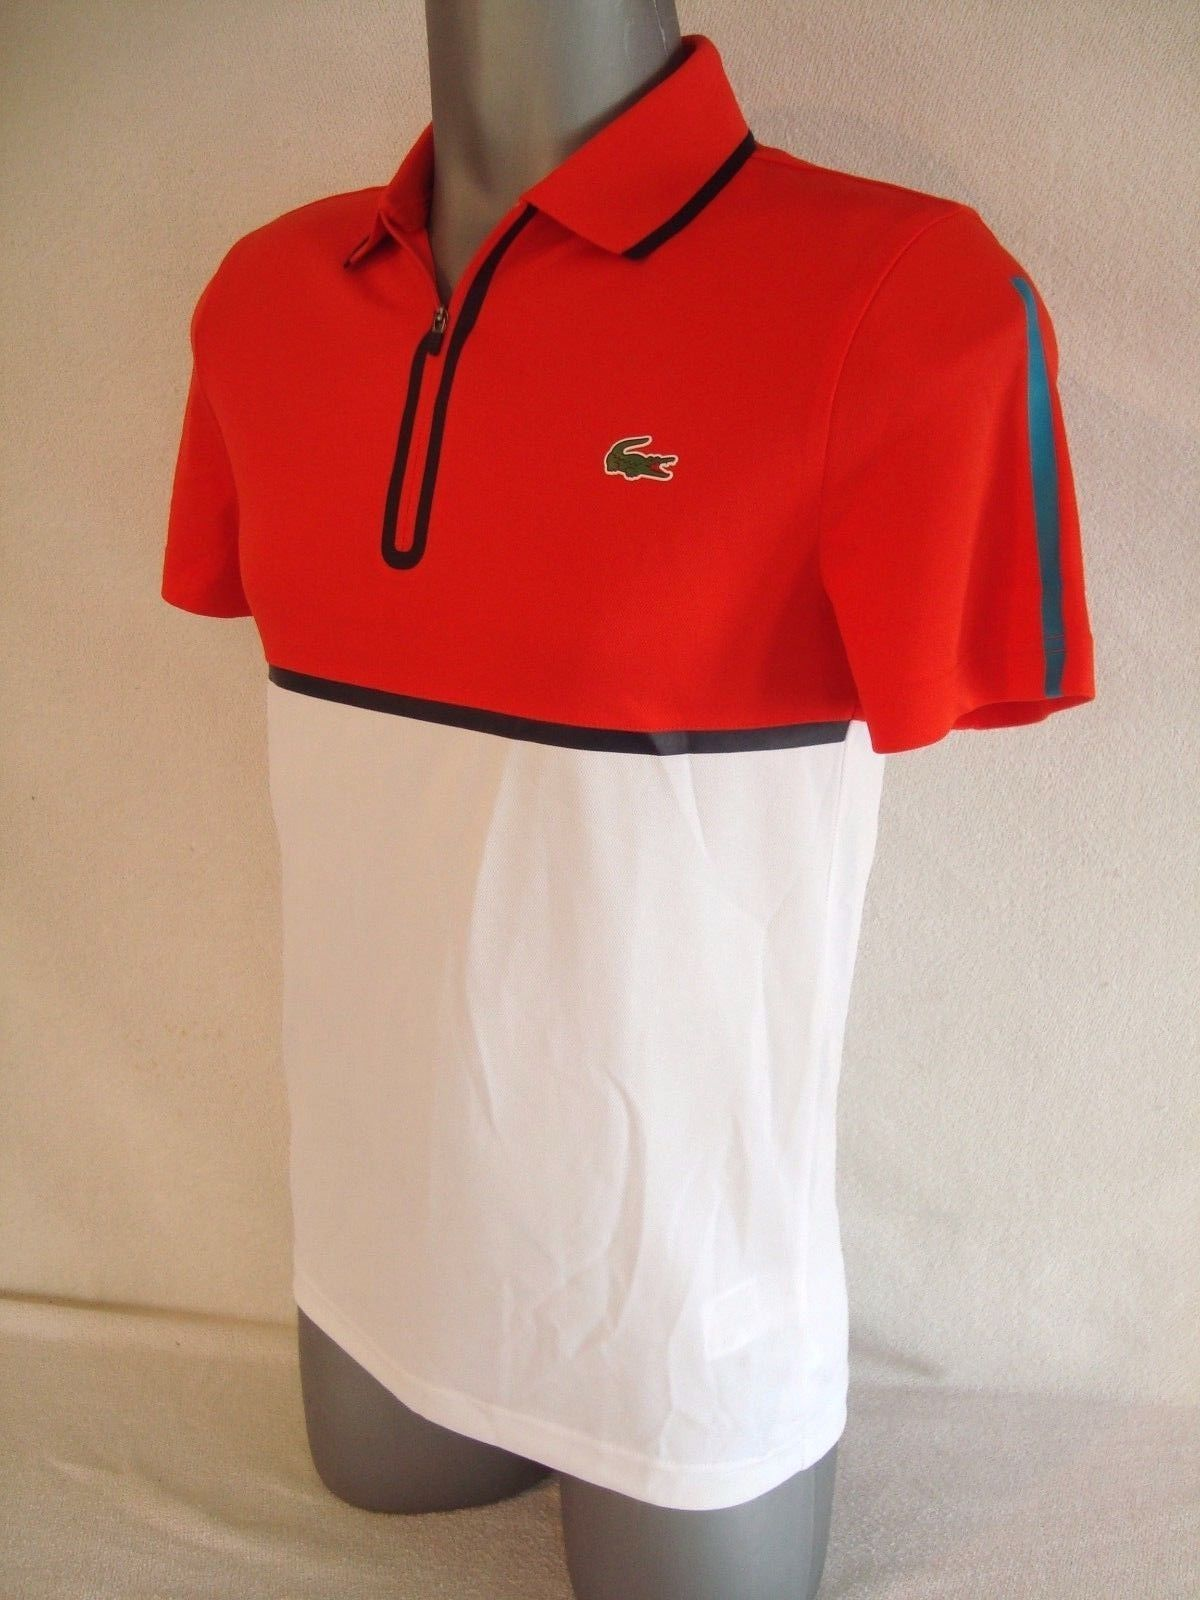 9de0b454b Lacoste SPORT Red White Ultra Dry Mens Zipper Pique Knit Tennis Polo Shirt  NEW